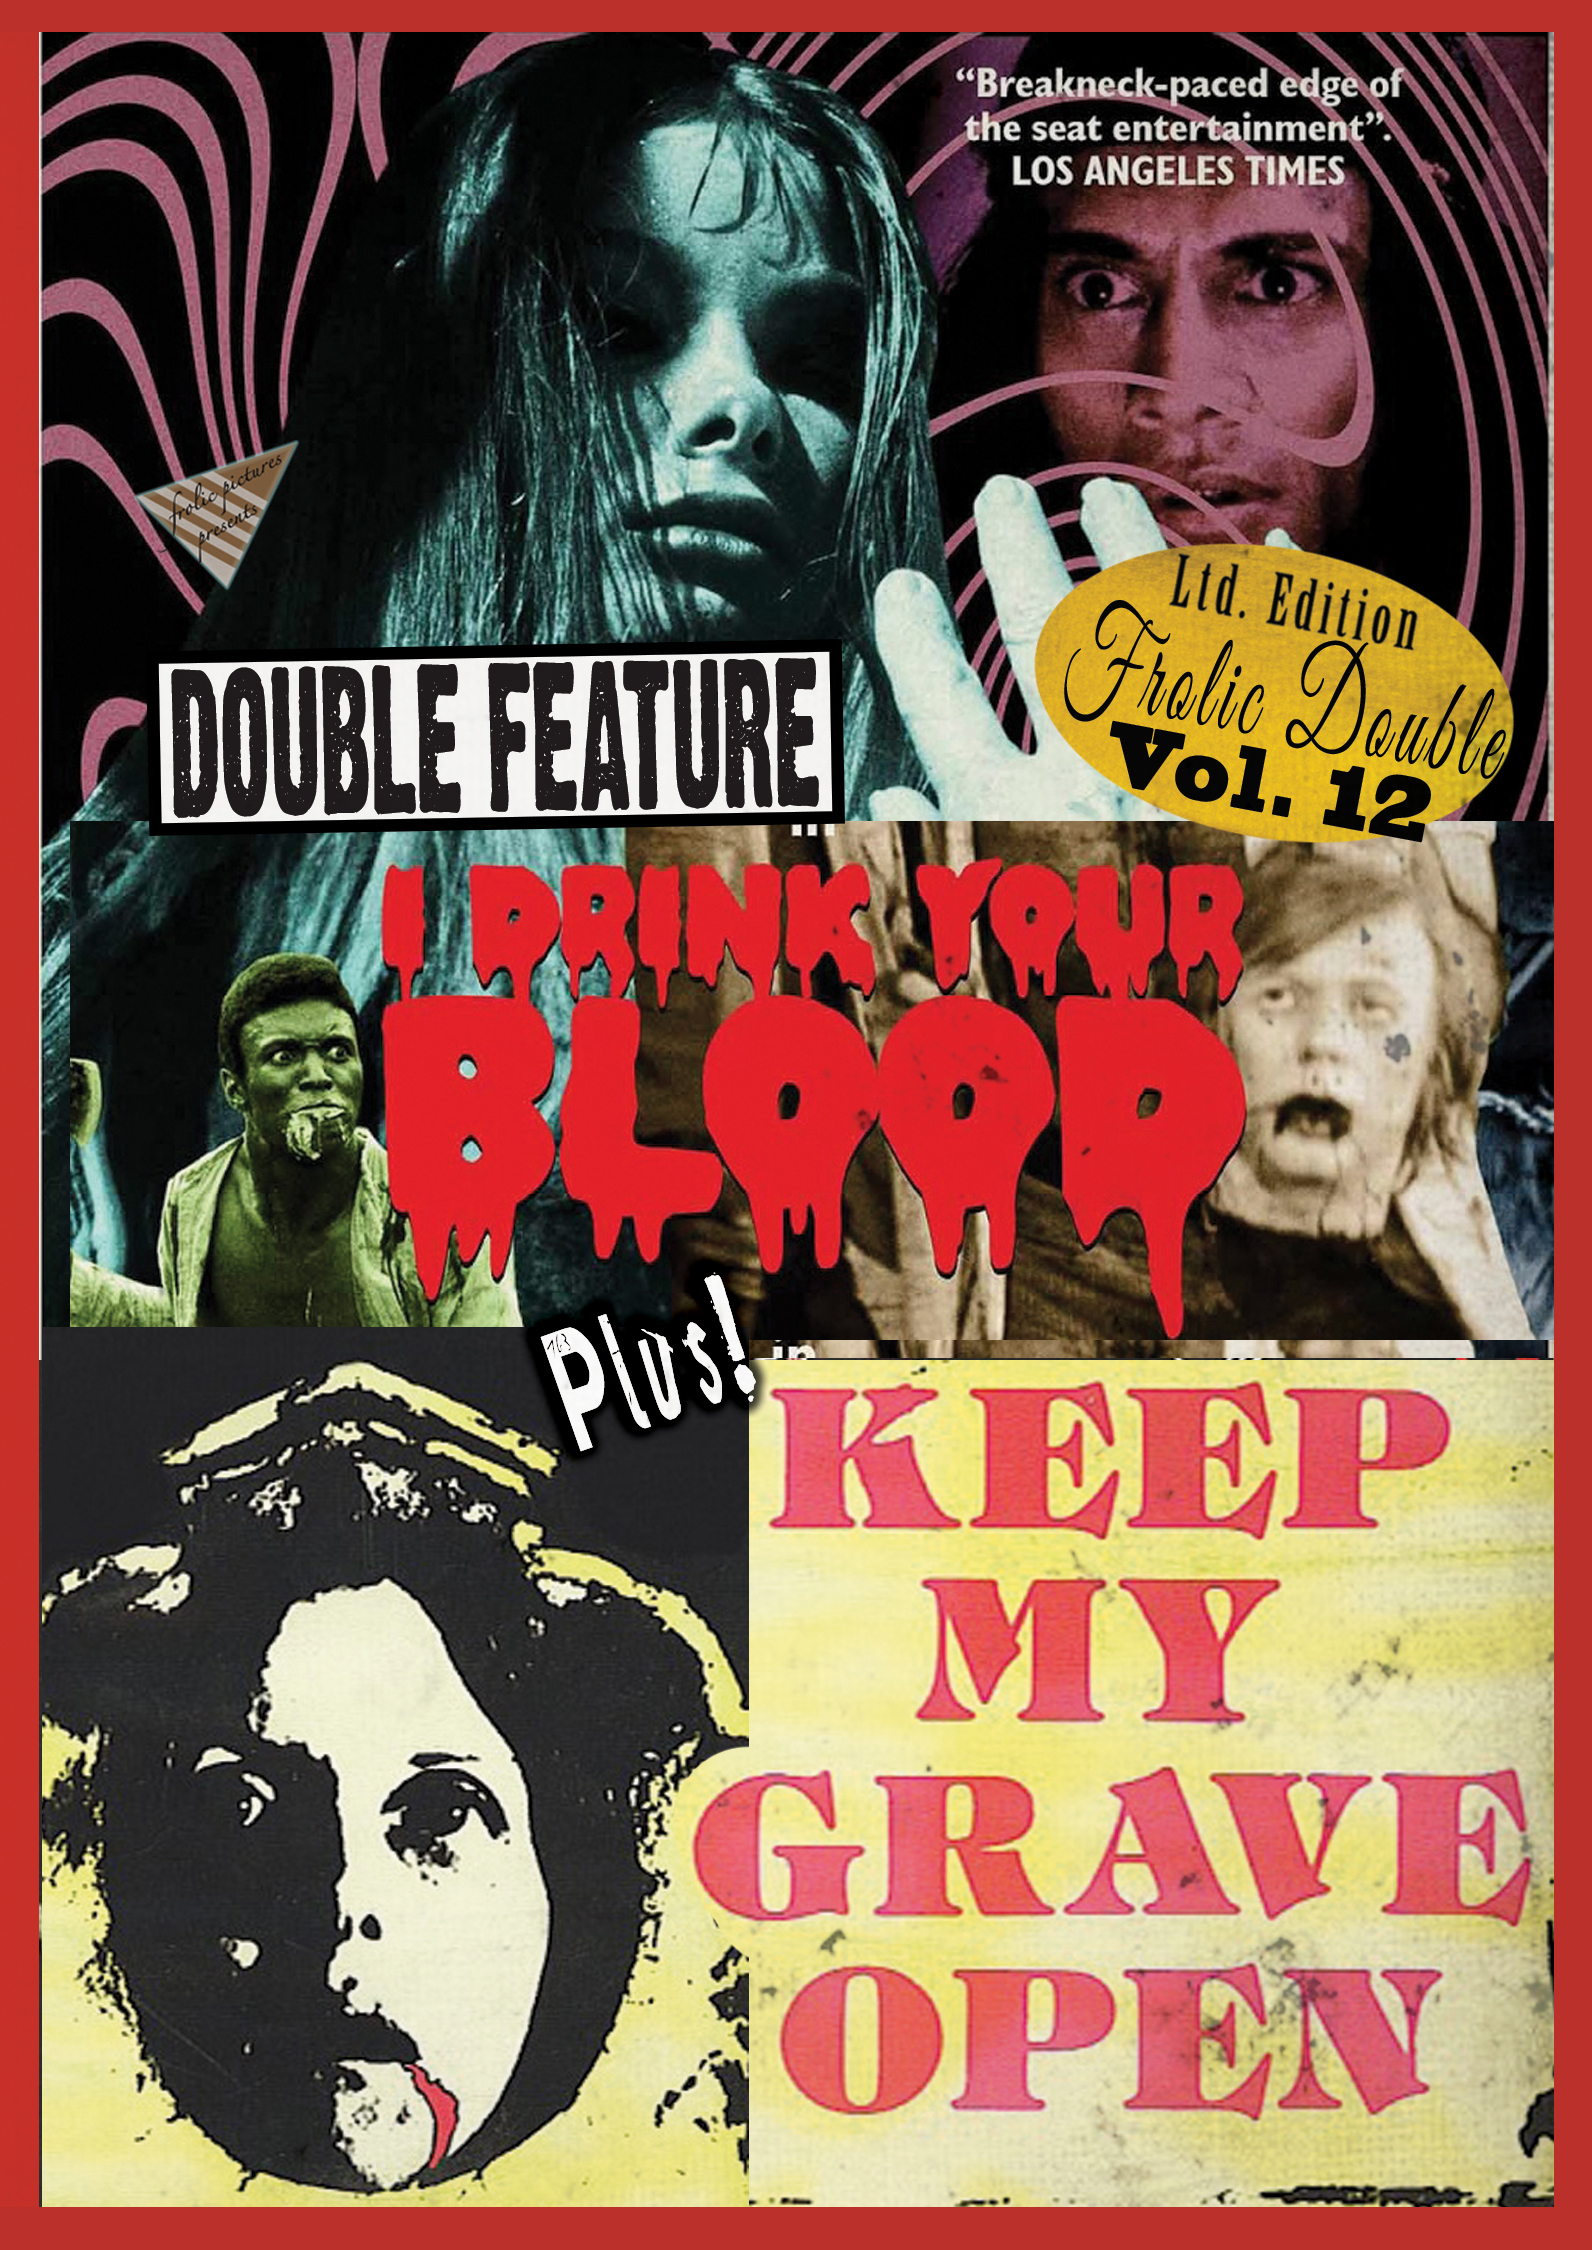 Grindhouse Series